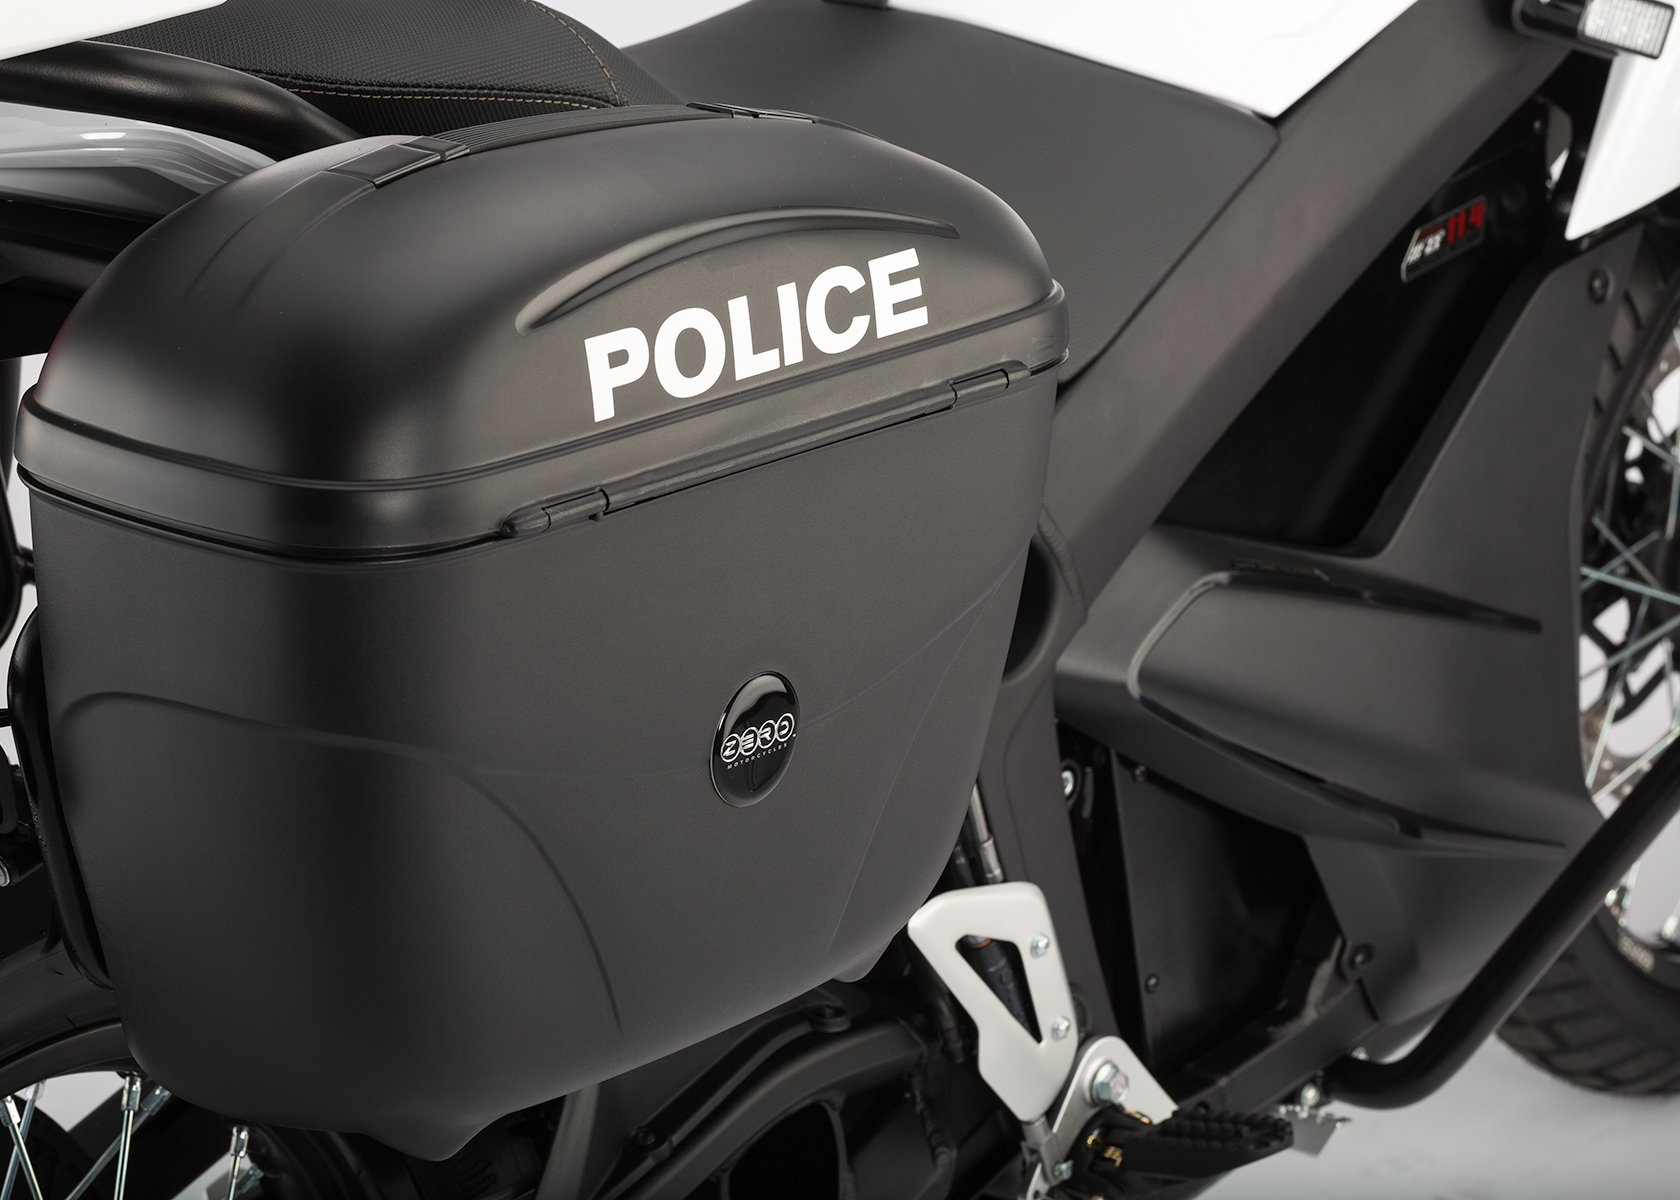 2014 Zero Police Electric Motorcycle: Side Bag